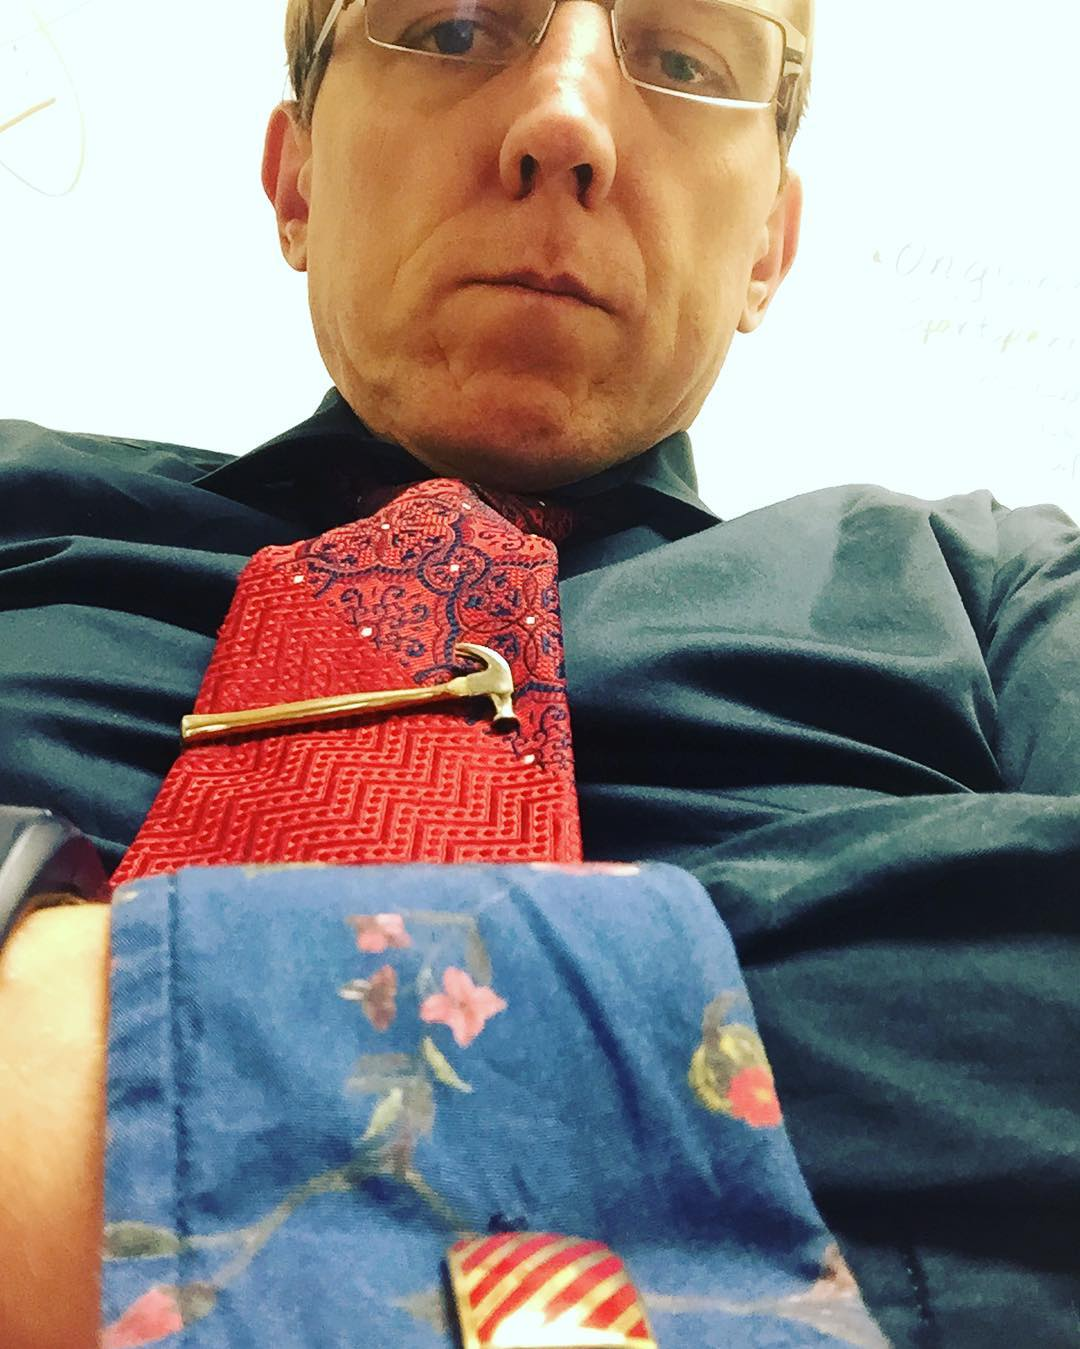 Vintage cuff links, hammer clip, and flowers for #tiedayfriday